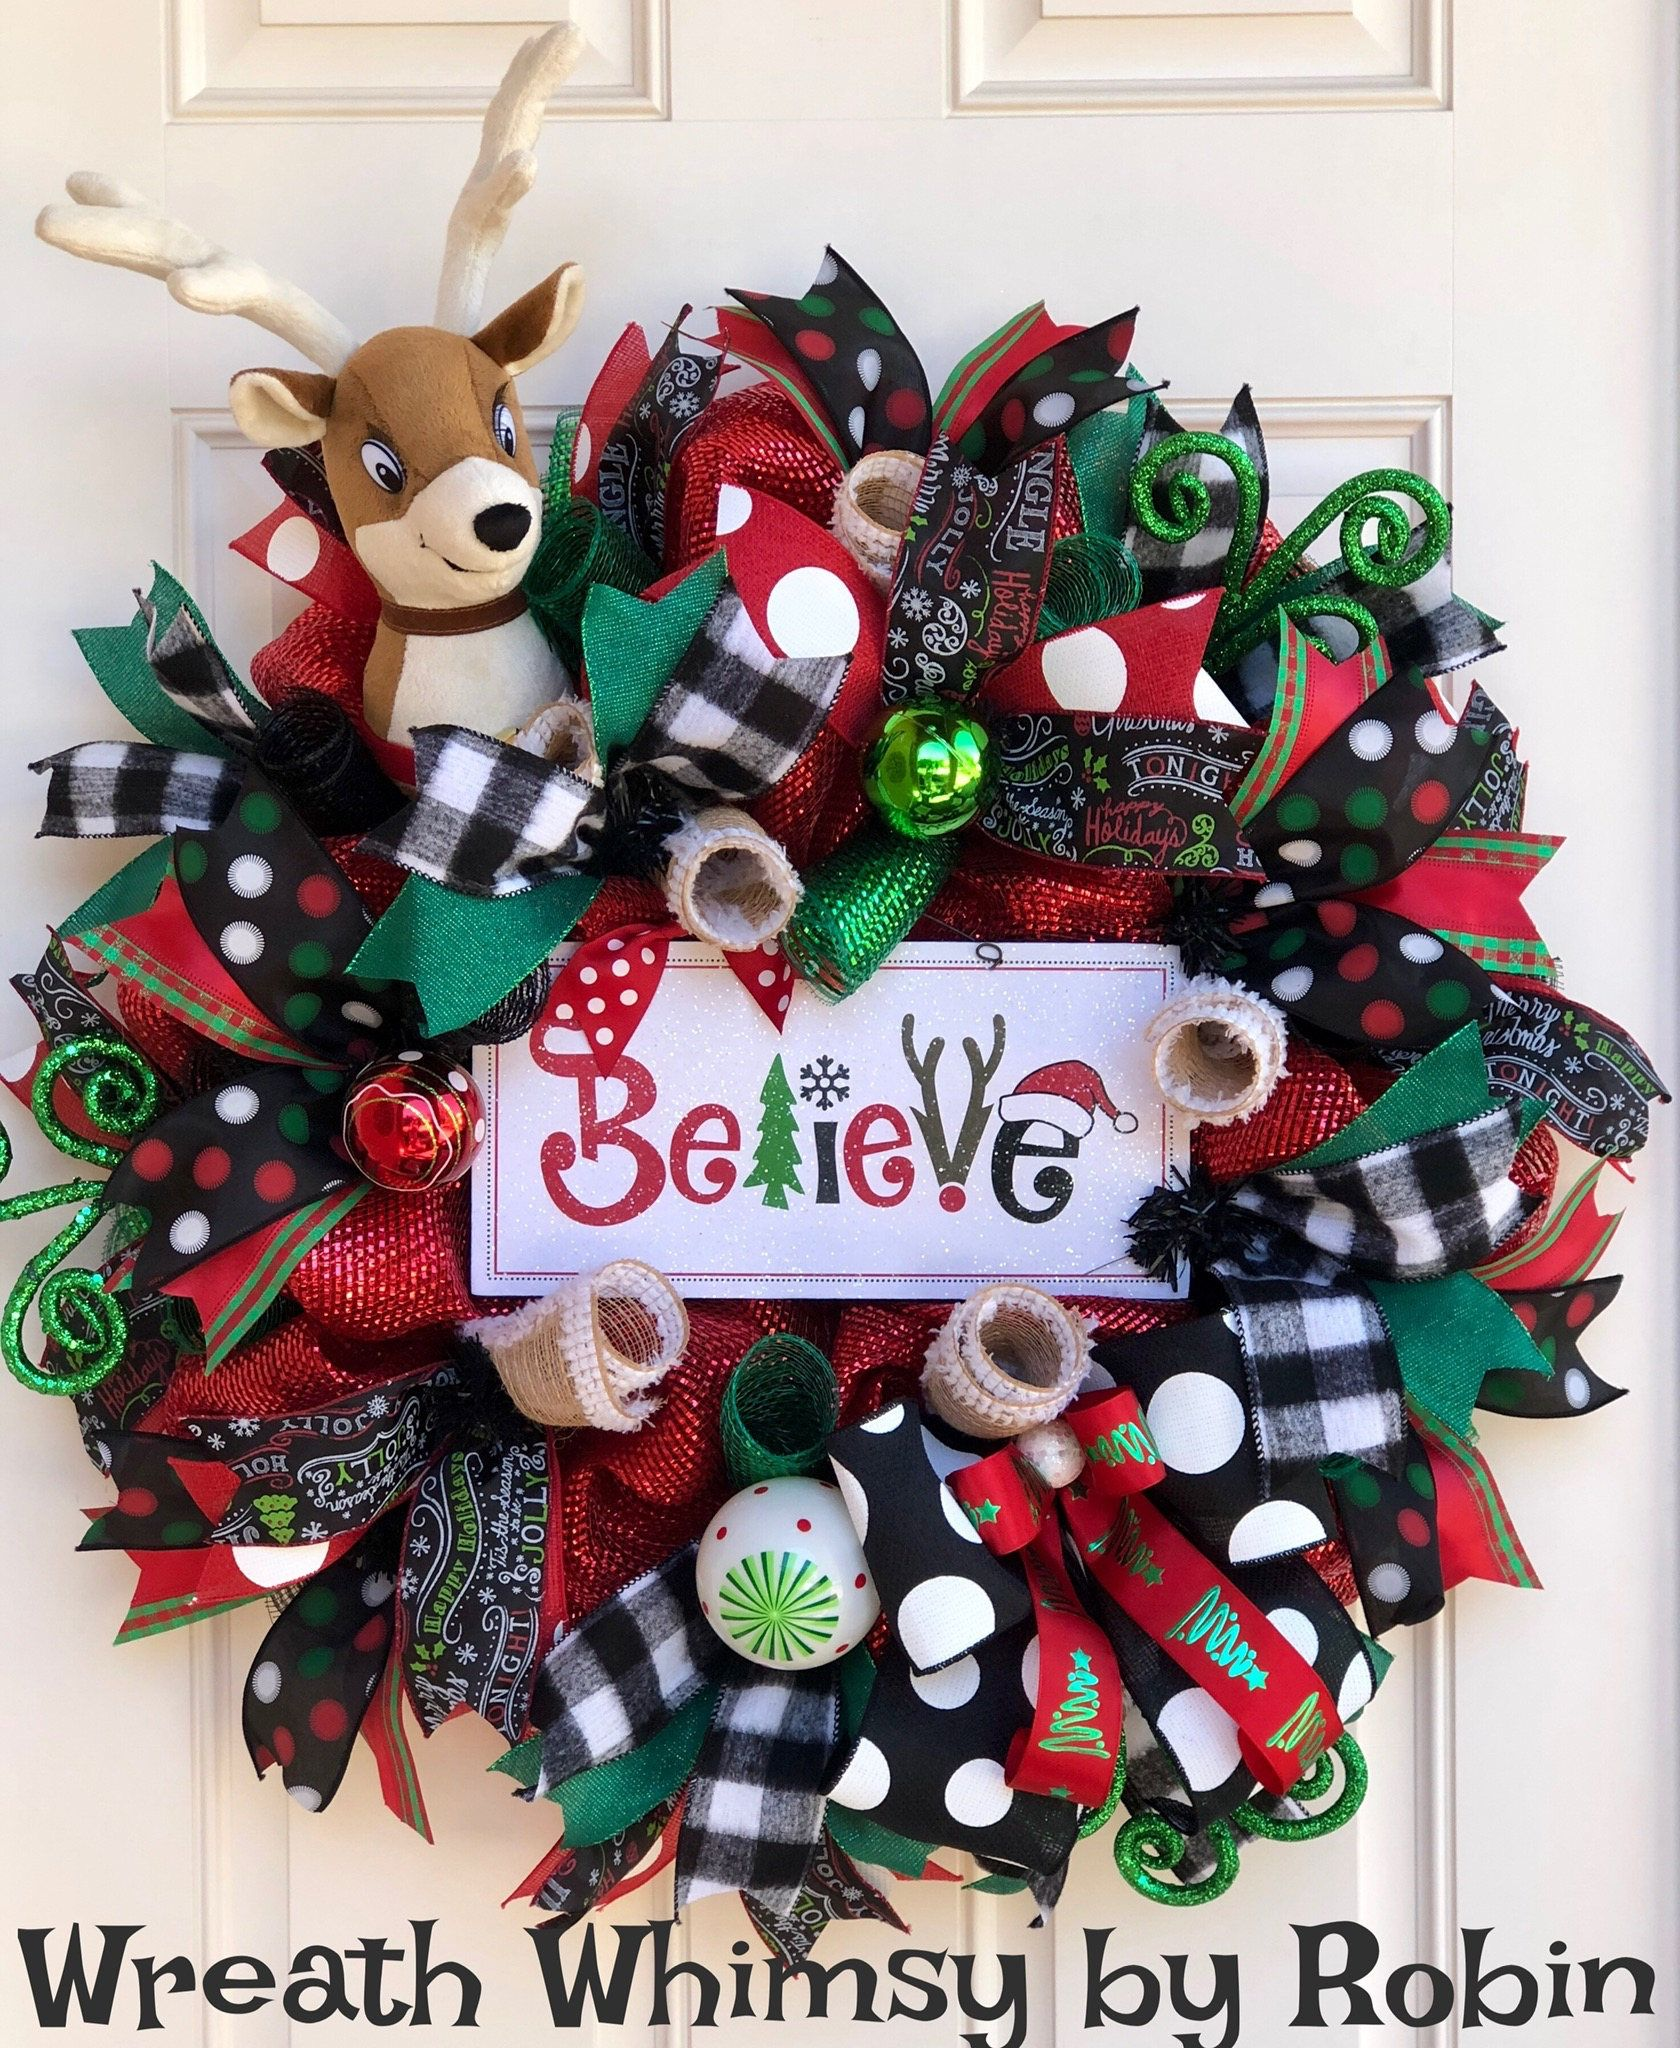 Whimsical Holiday Deco Mesh Reindeer Wreath in Red Emerald & Black